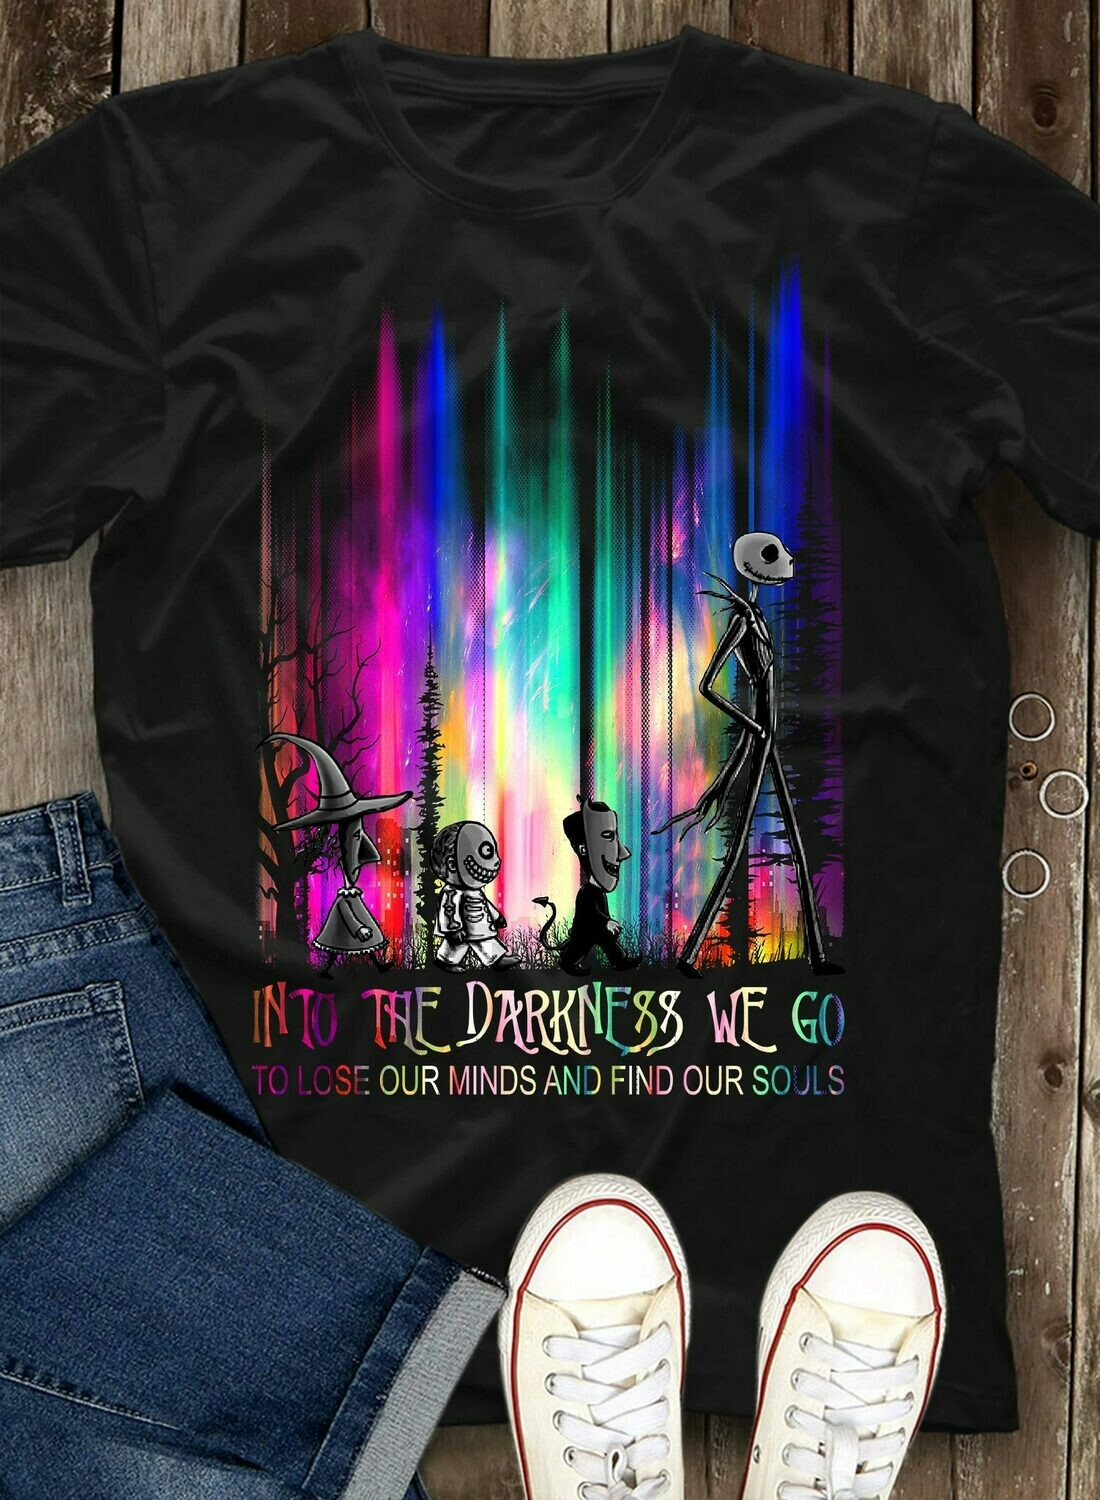 In to the darkness we go to lose our minds and find our souls shirt